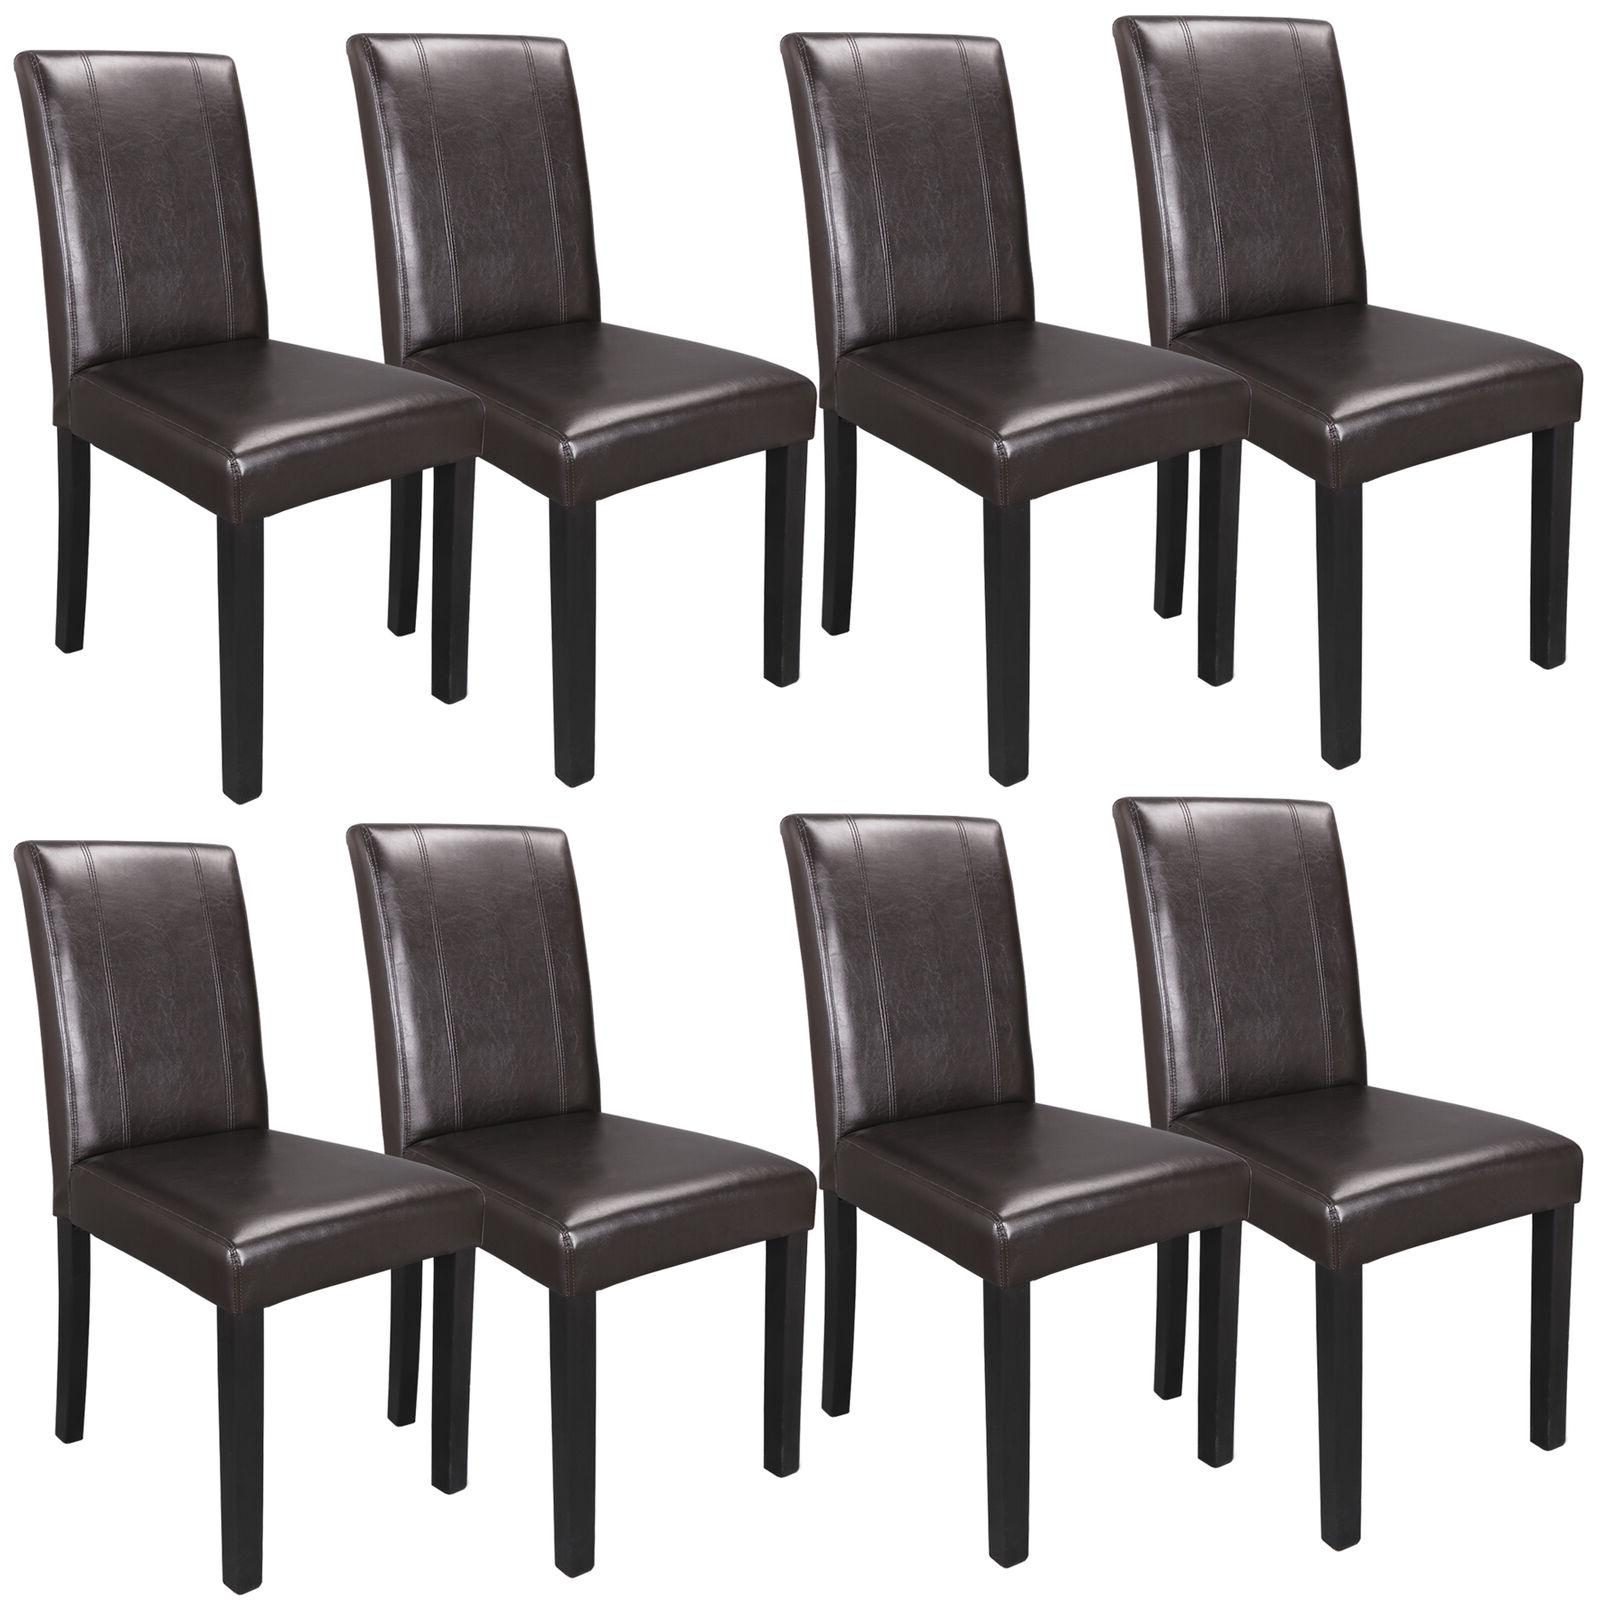 8 set dining parson room chairs kitchen